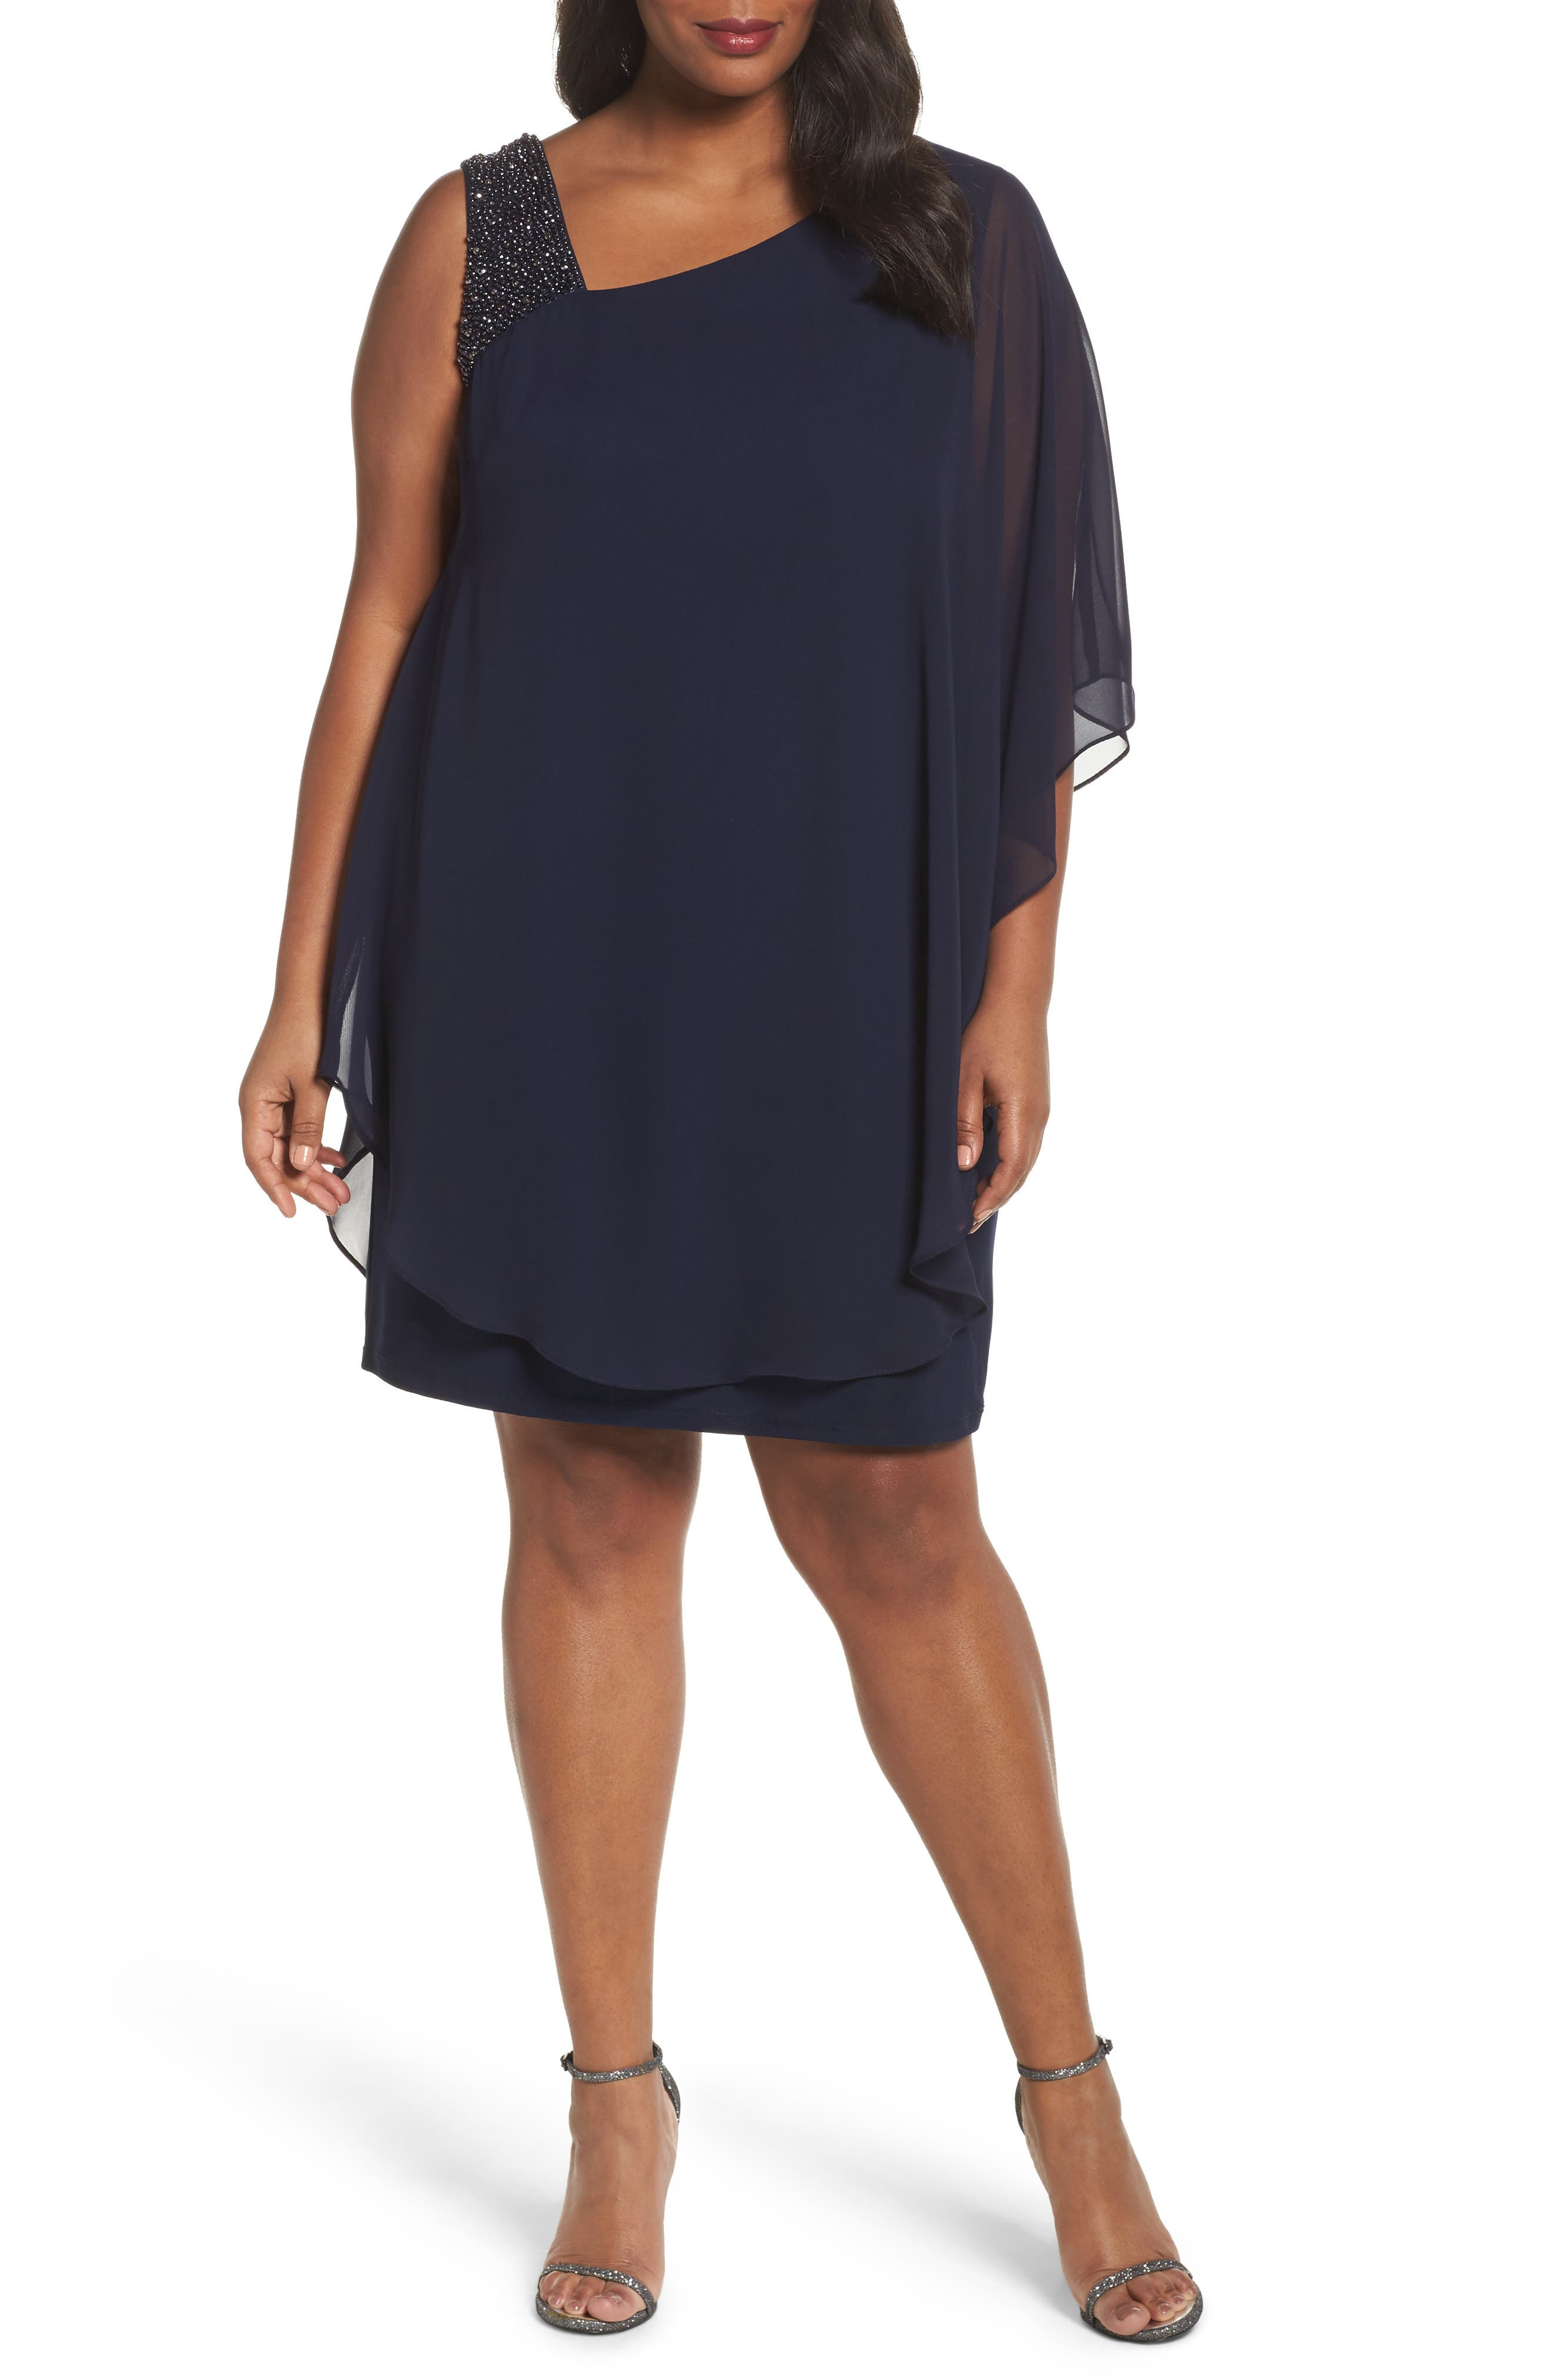 Alternate Image 1 Selected - Xscape Embellished One-Shoulder Overlay Cocktail Dress (Plus Size)